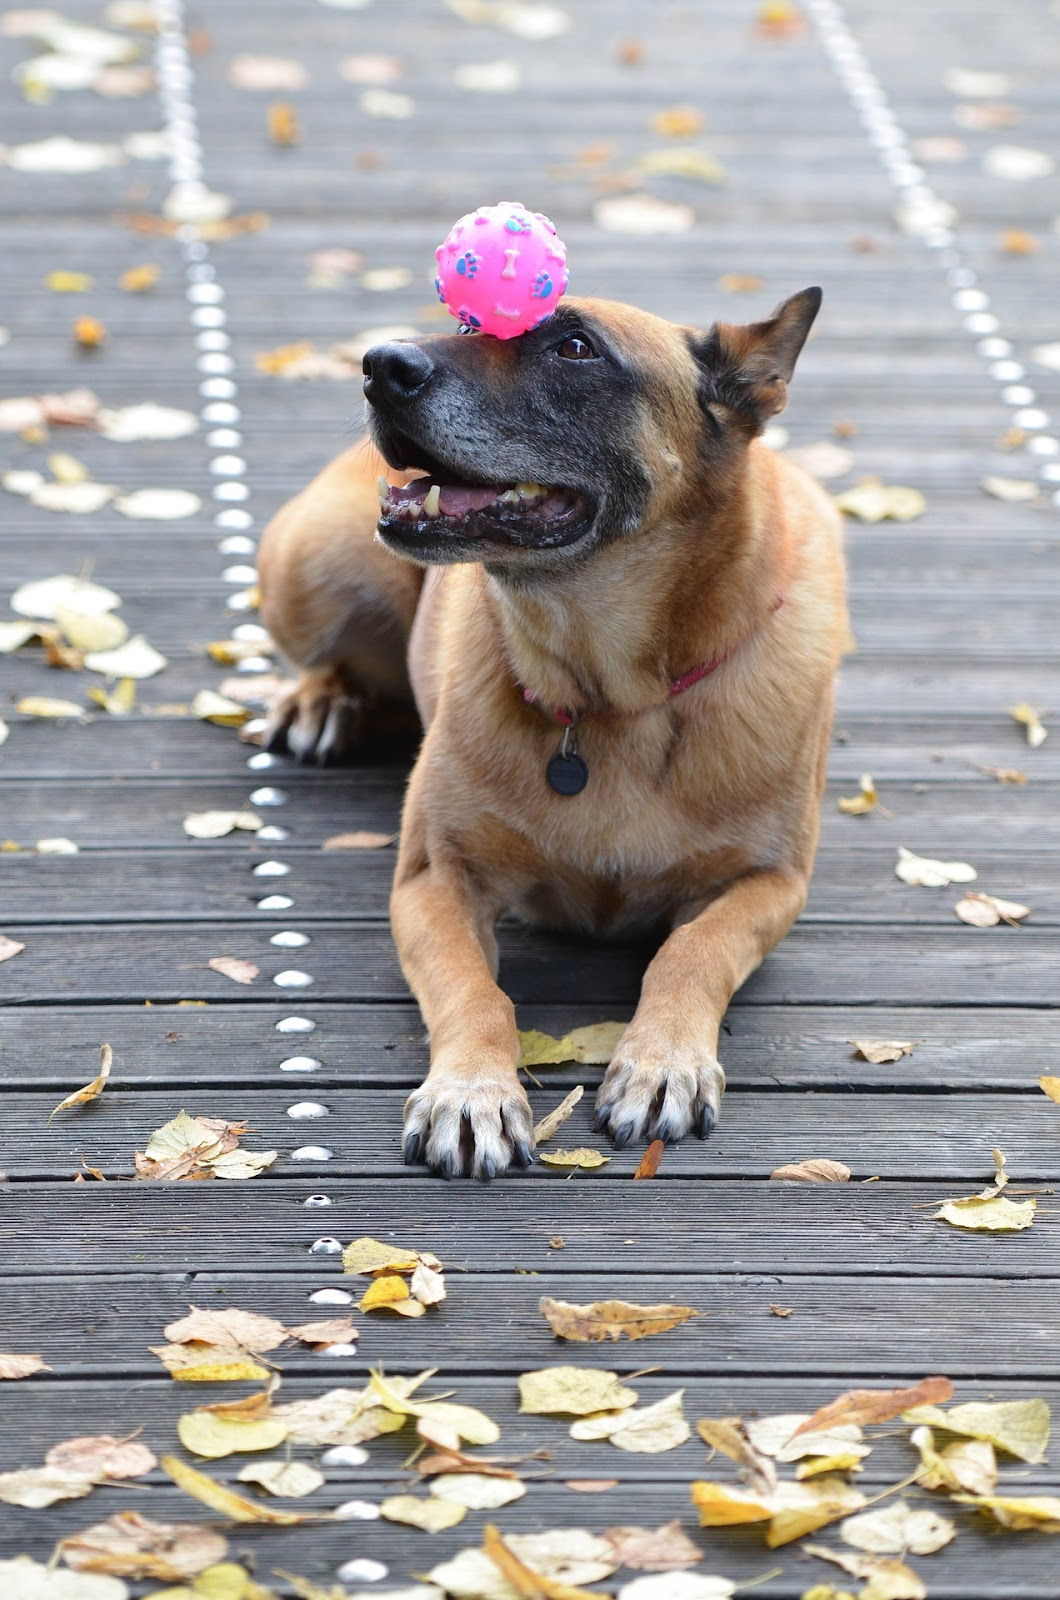 german shepherd balancing ball on his nose